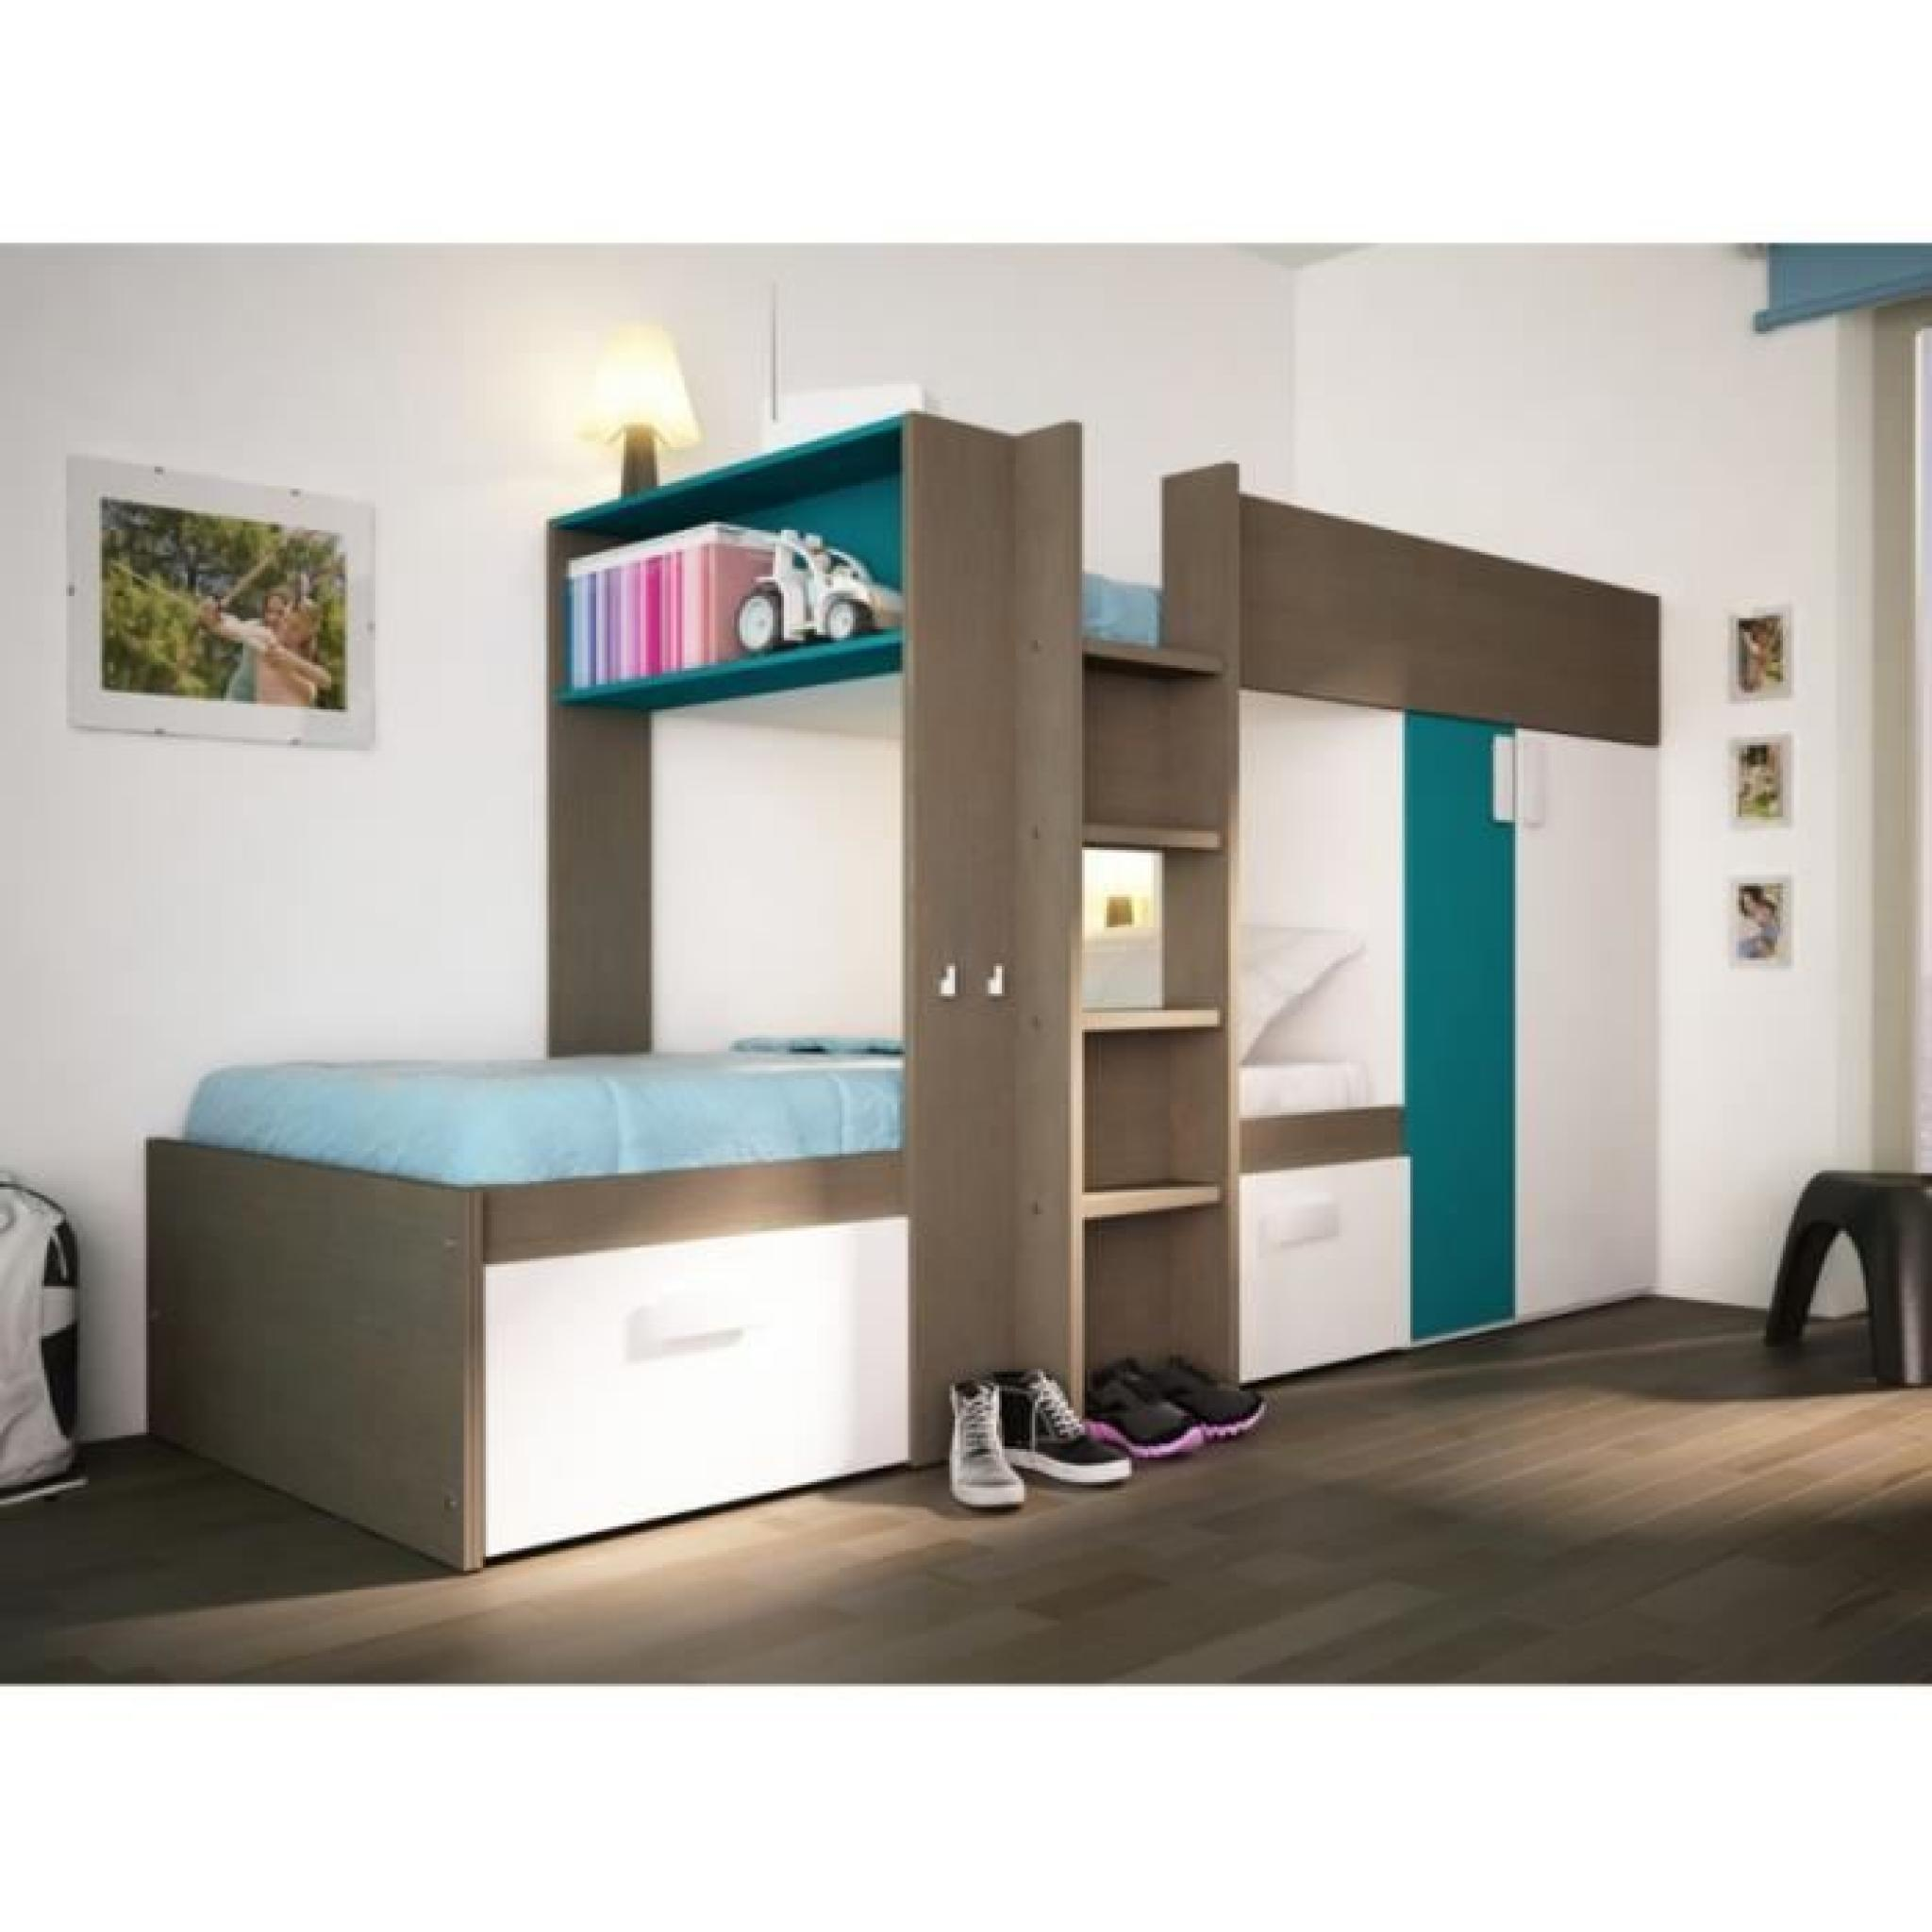 lit mezzanine avec armoire integree 28 images lits. Black Bedroom Furniture Sets. Home Design Ideas